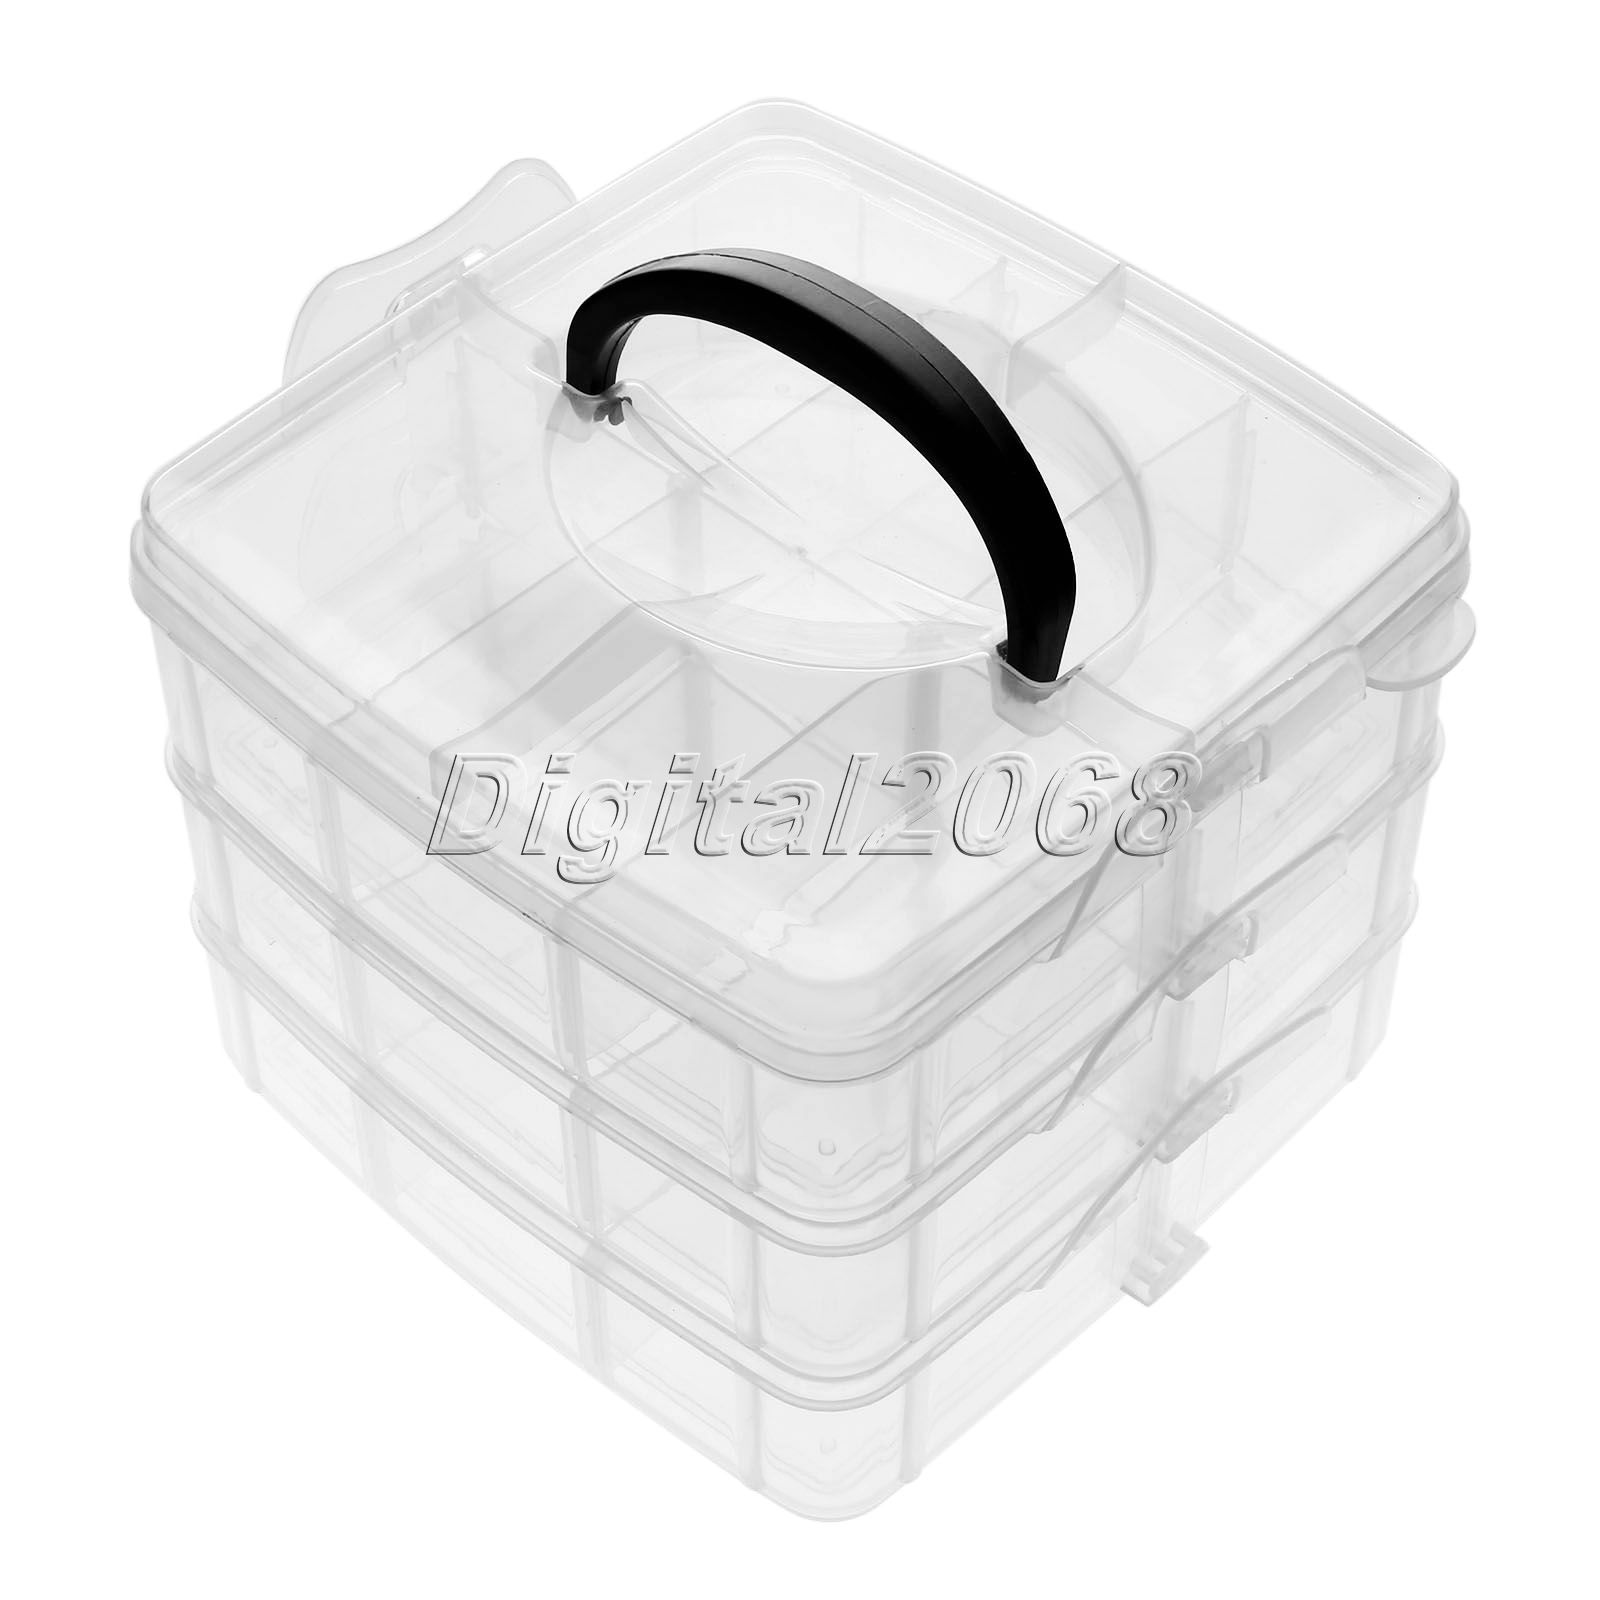 High quality arrival clear plastic craft beads jewellery for Quality craft tool box